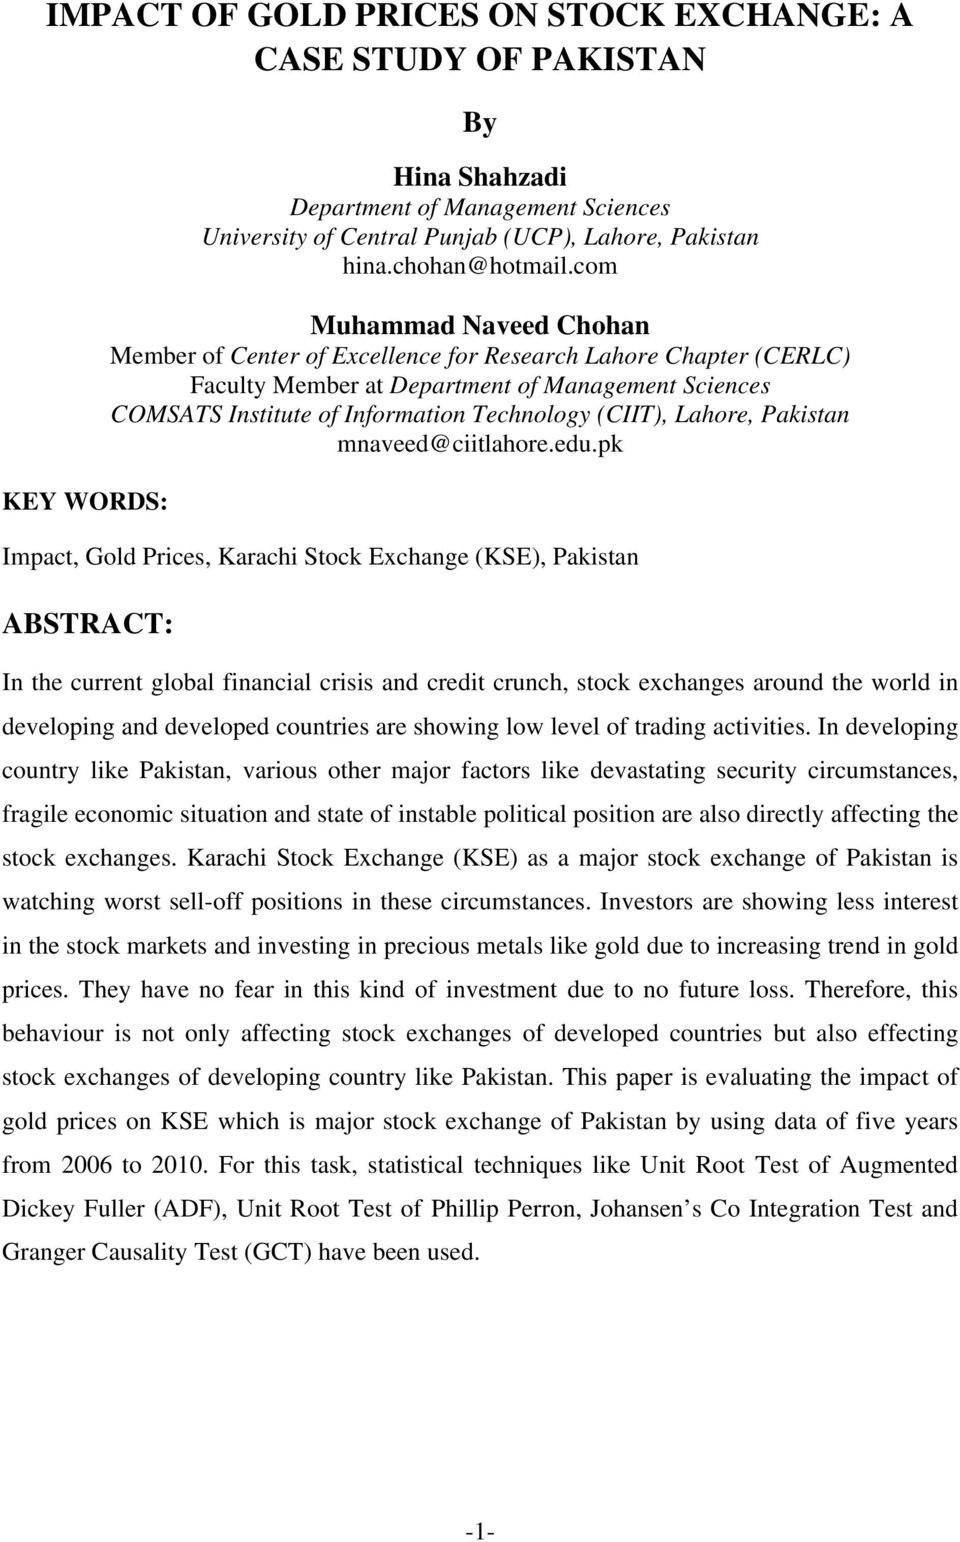 com Muhammad Naveed Chohan Member of Center of Excellence for Research Lahore Chapter (CERLC) Faculty Member at Department of Management Sciences COMSATS Institute of Information Technology (CIIT),